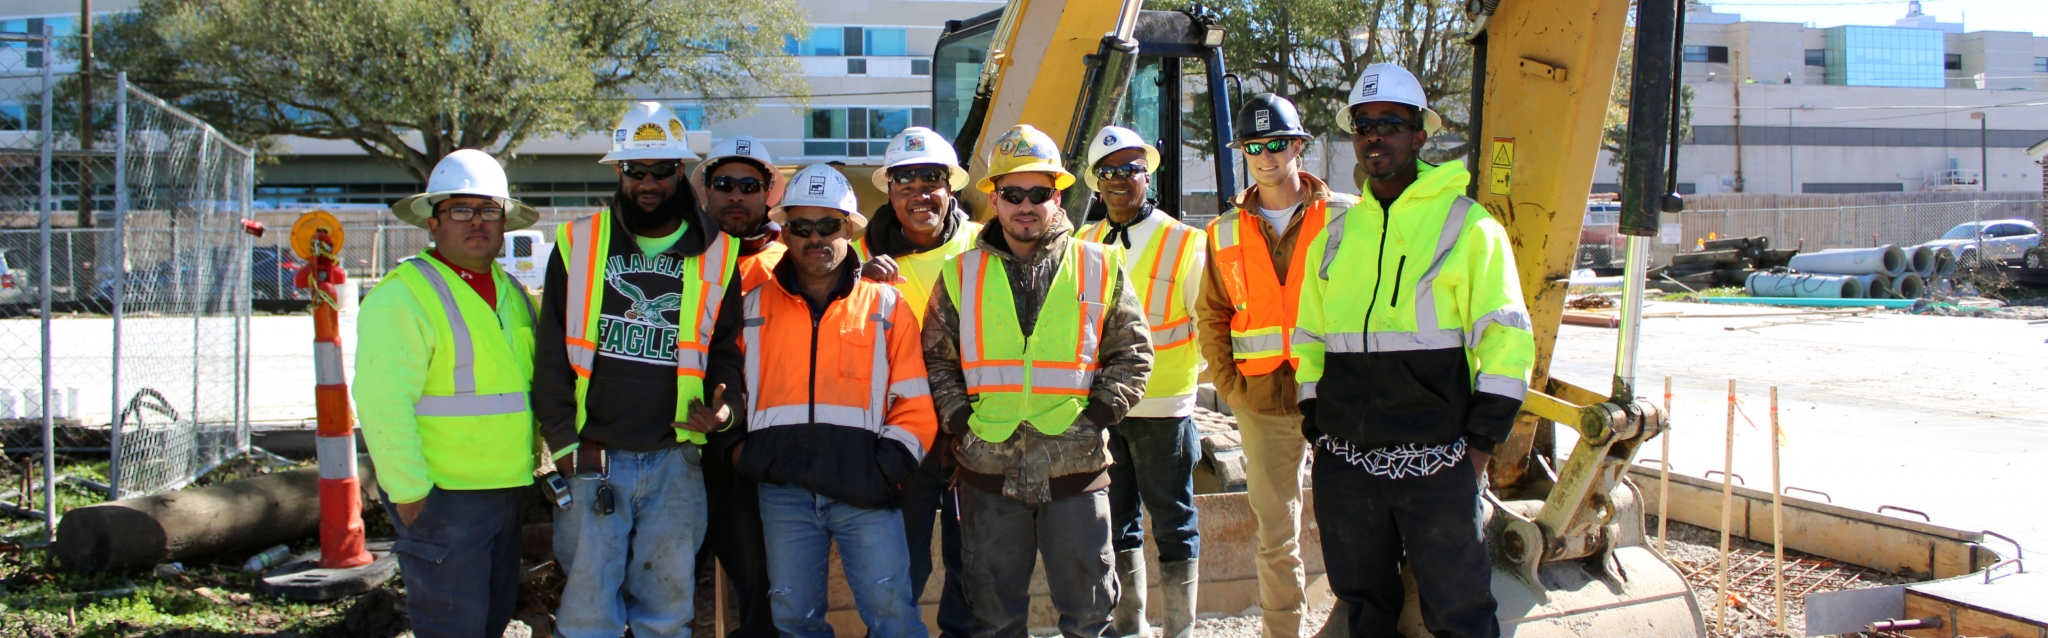 A Durr crew poses in front of an excavator